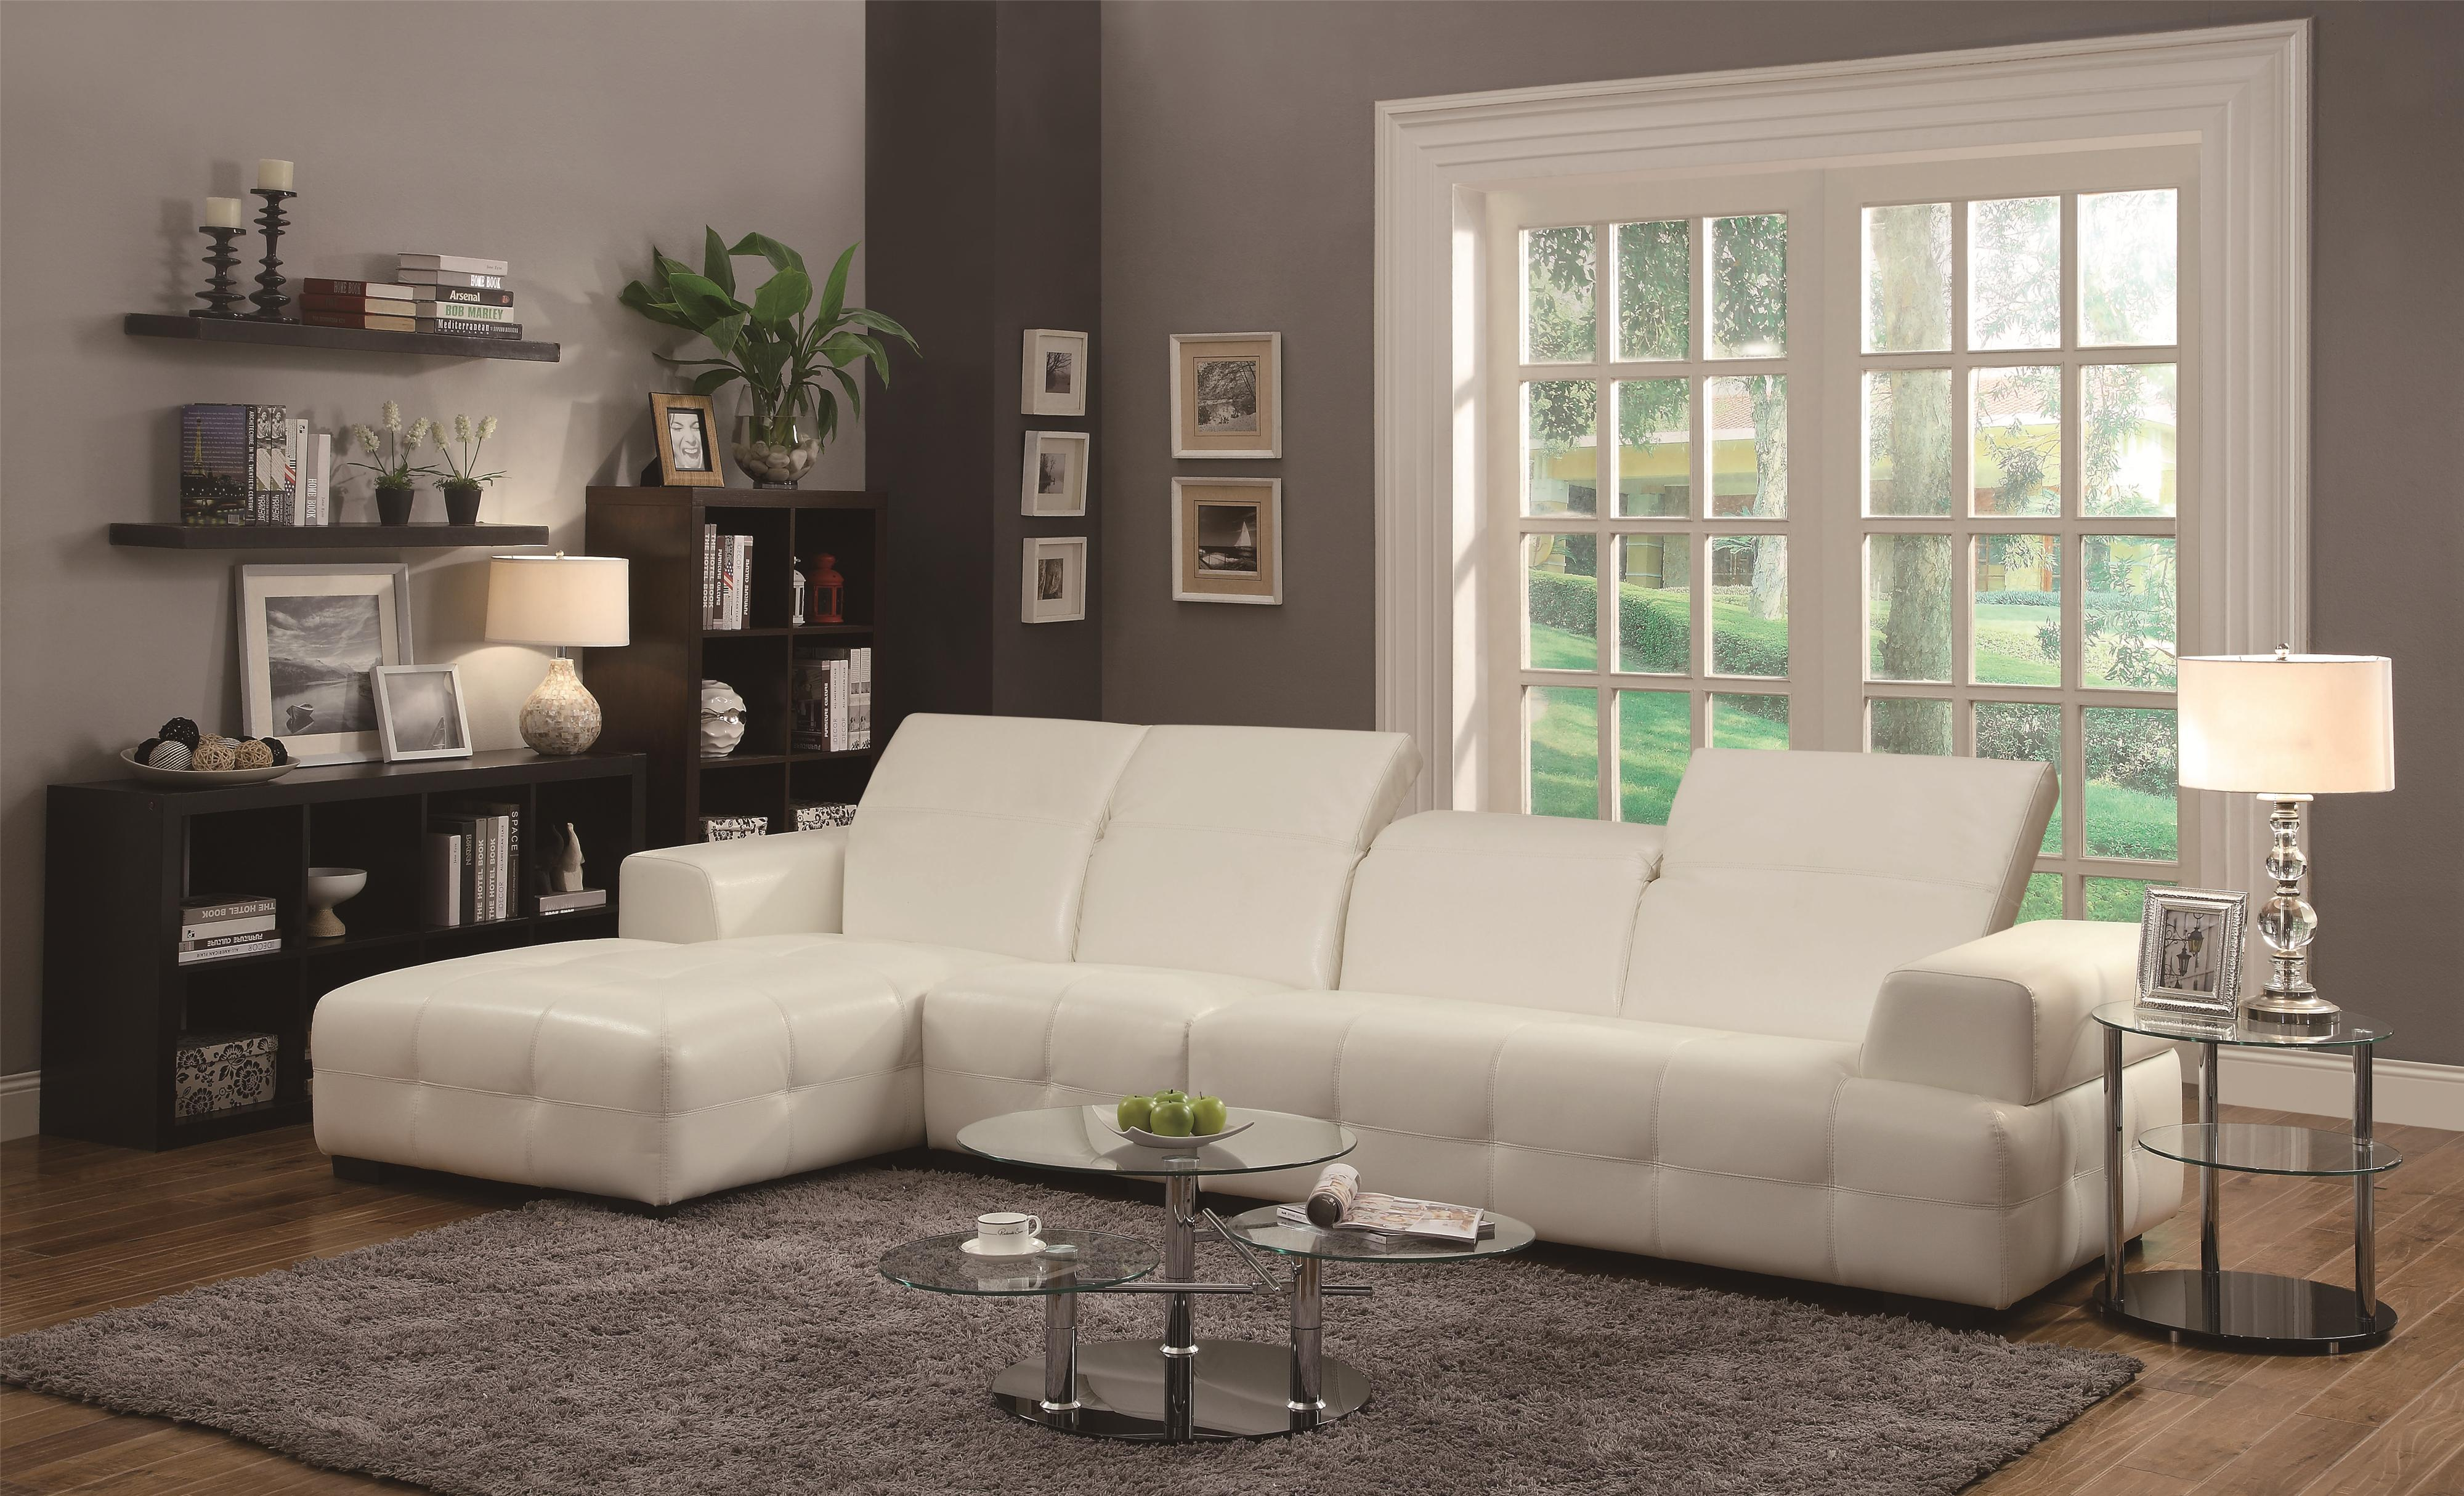 Coaster Darby Contemporary Sectional Sofa with Wide Arms - Coaster Fine Furniture : coaster sectional sofa - Sectionals, Sofas & Couches